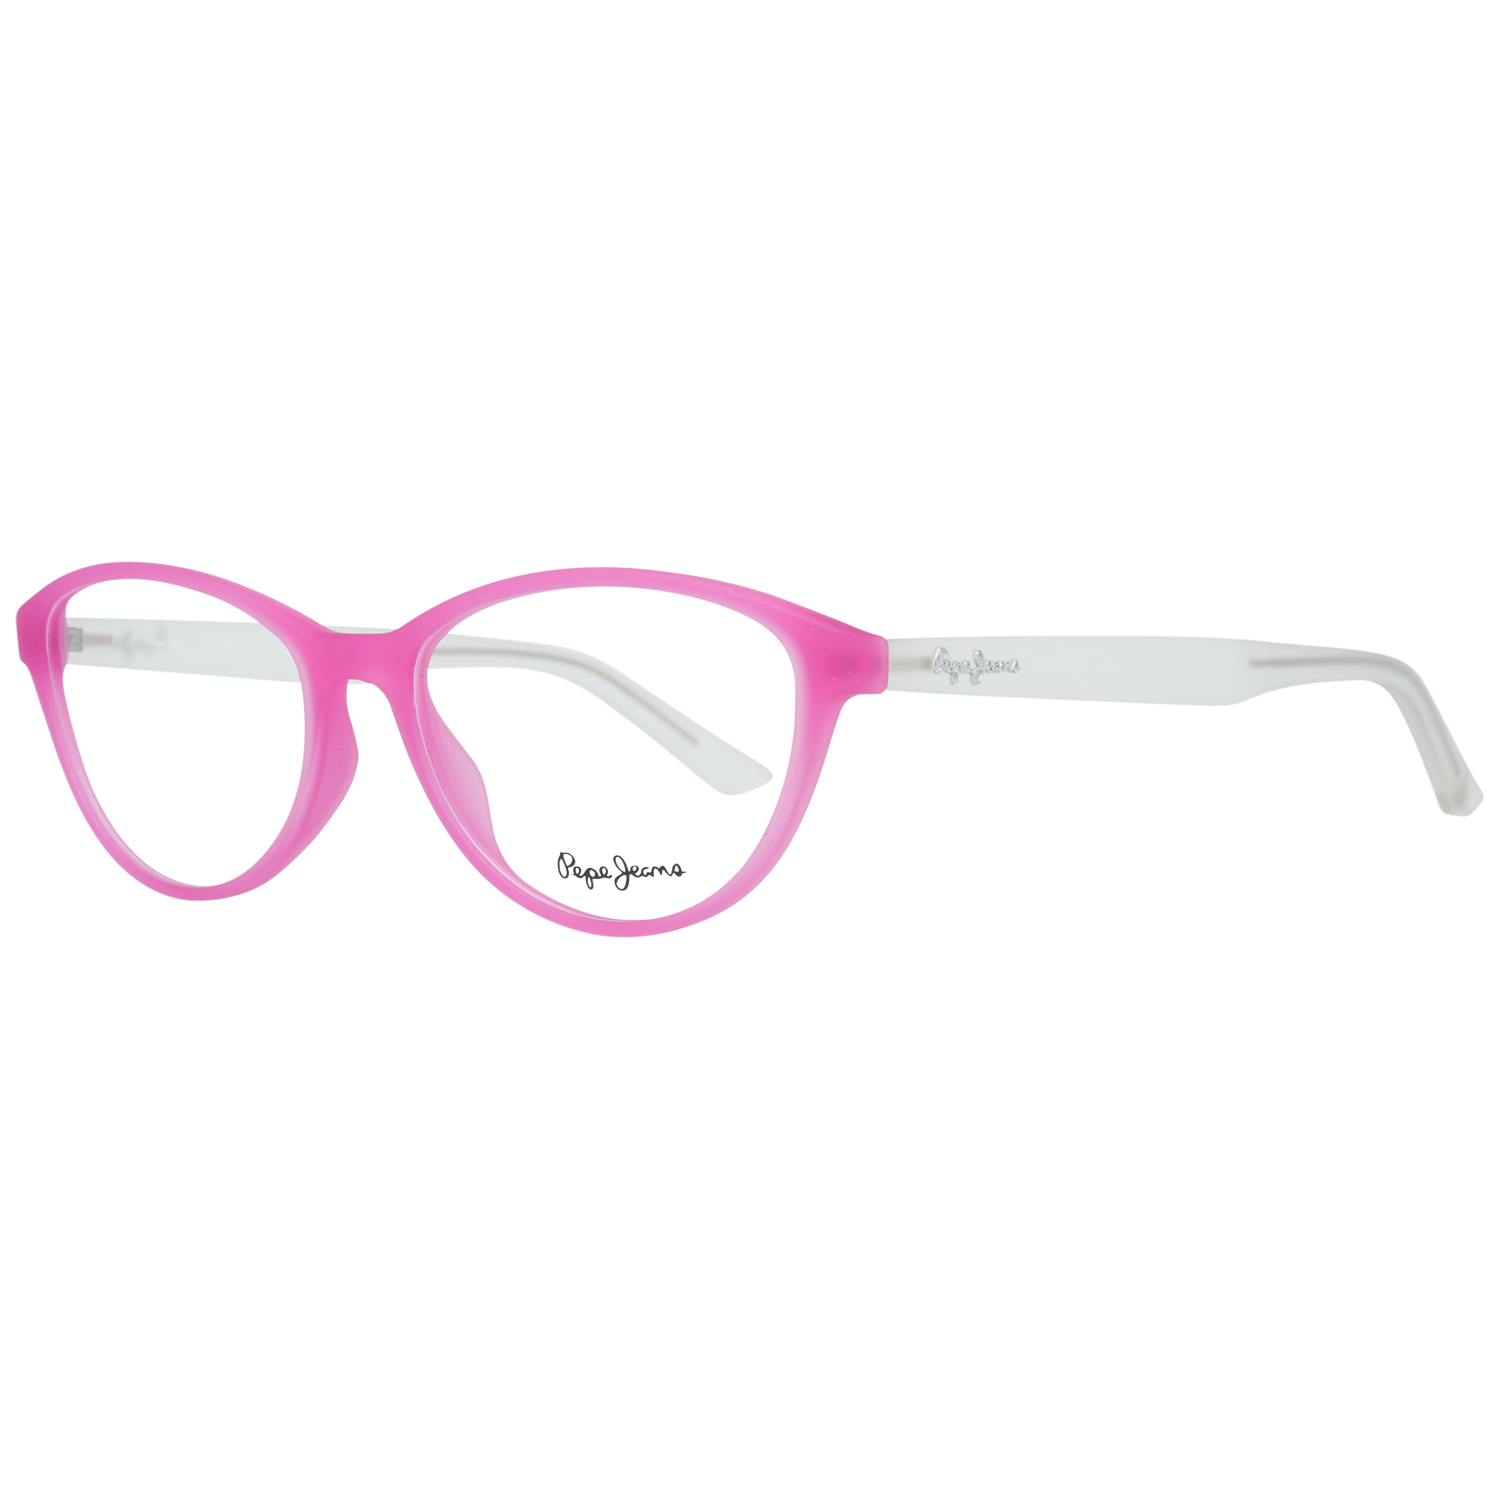 Pepe Jeans Optical Frame PJ3145 C2 53 Esme Women Pink